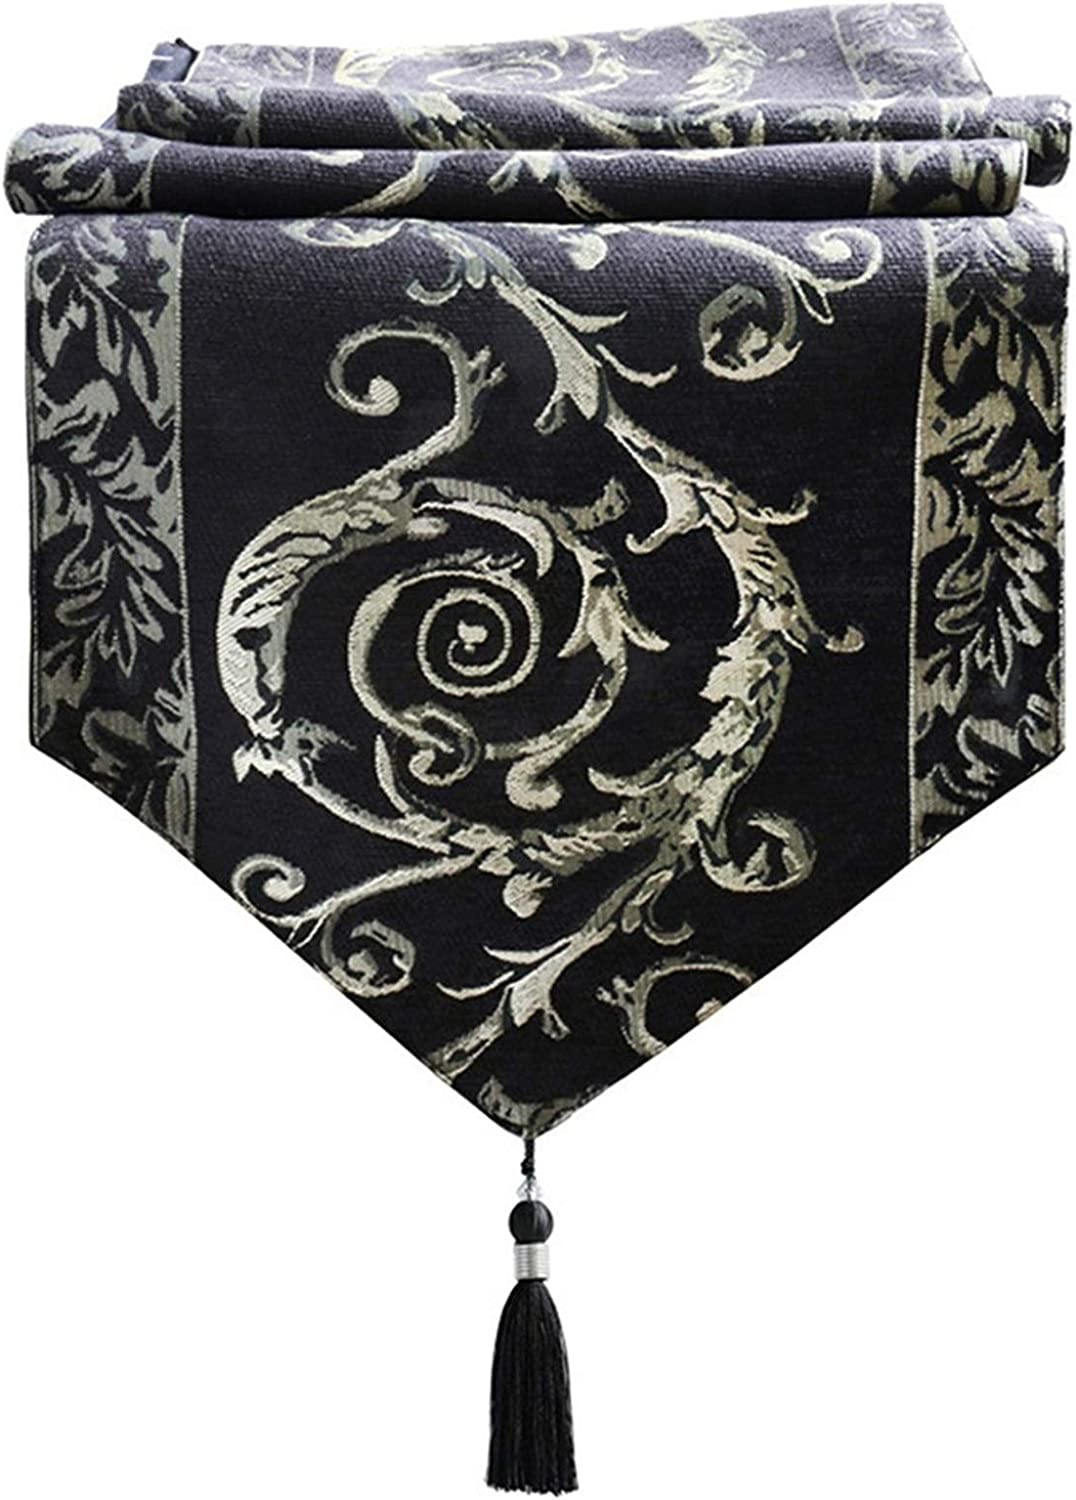 Sale SALE% OFF WZHONG American Bed Flag End Towel low-pricing Table Coffee